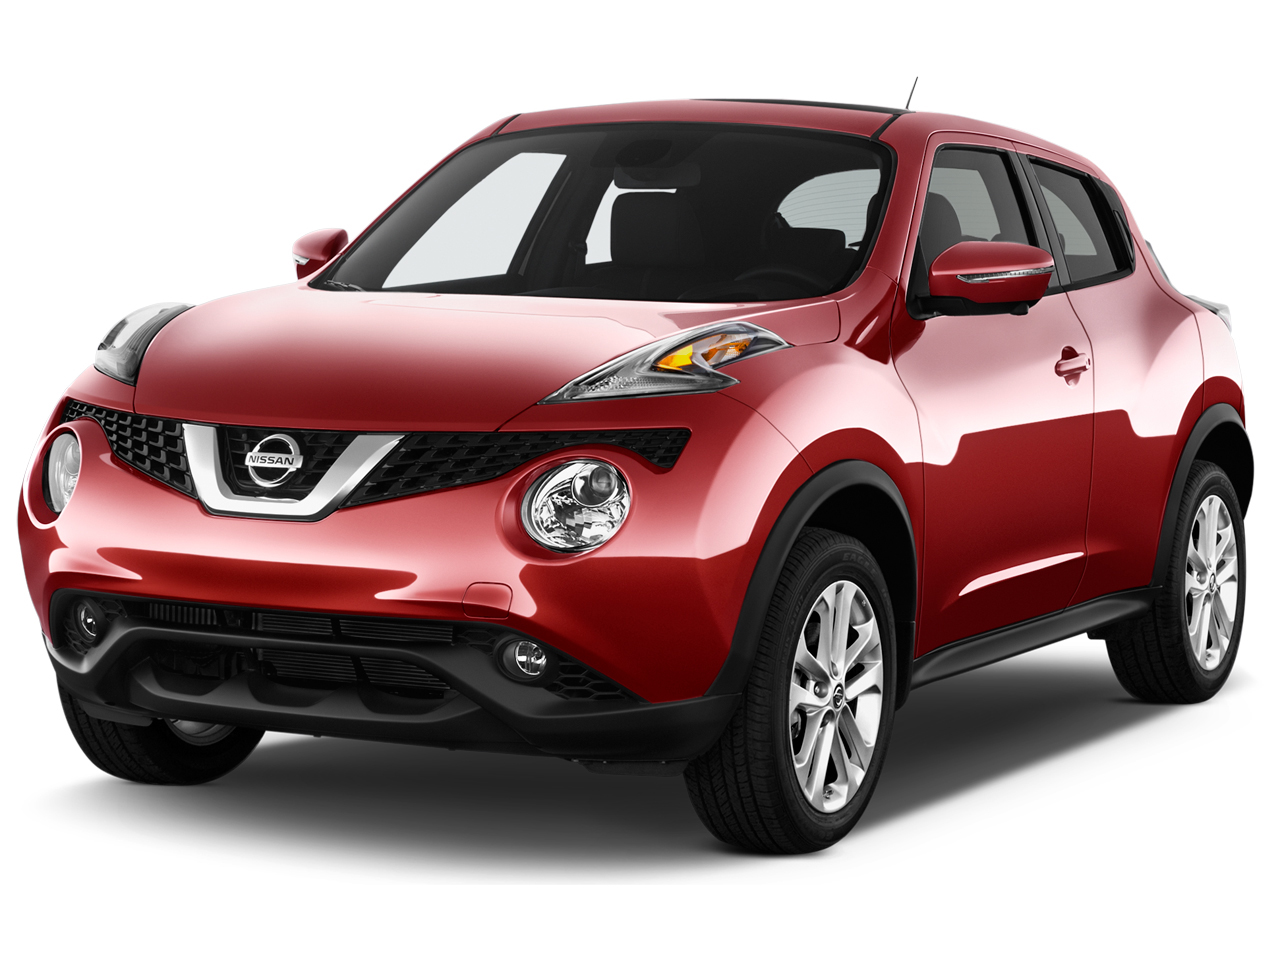 Cadillac El Paso >> New and Used Nissan Juke: Prices, Photos, Reviews, Specs - The Car Connection